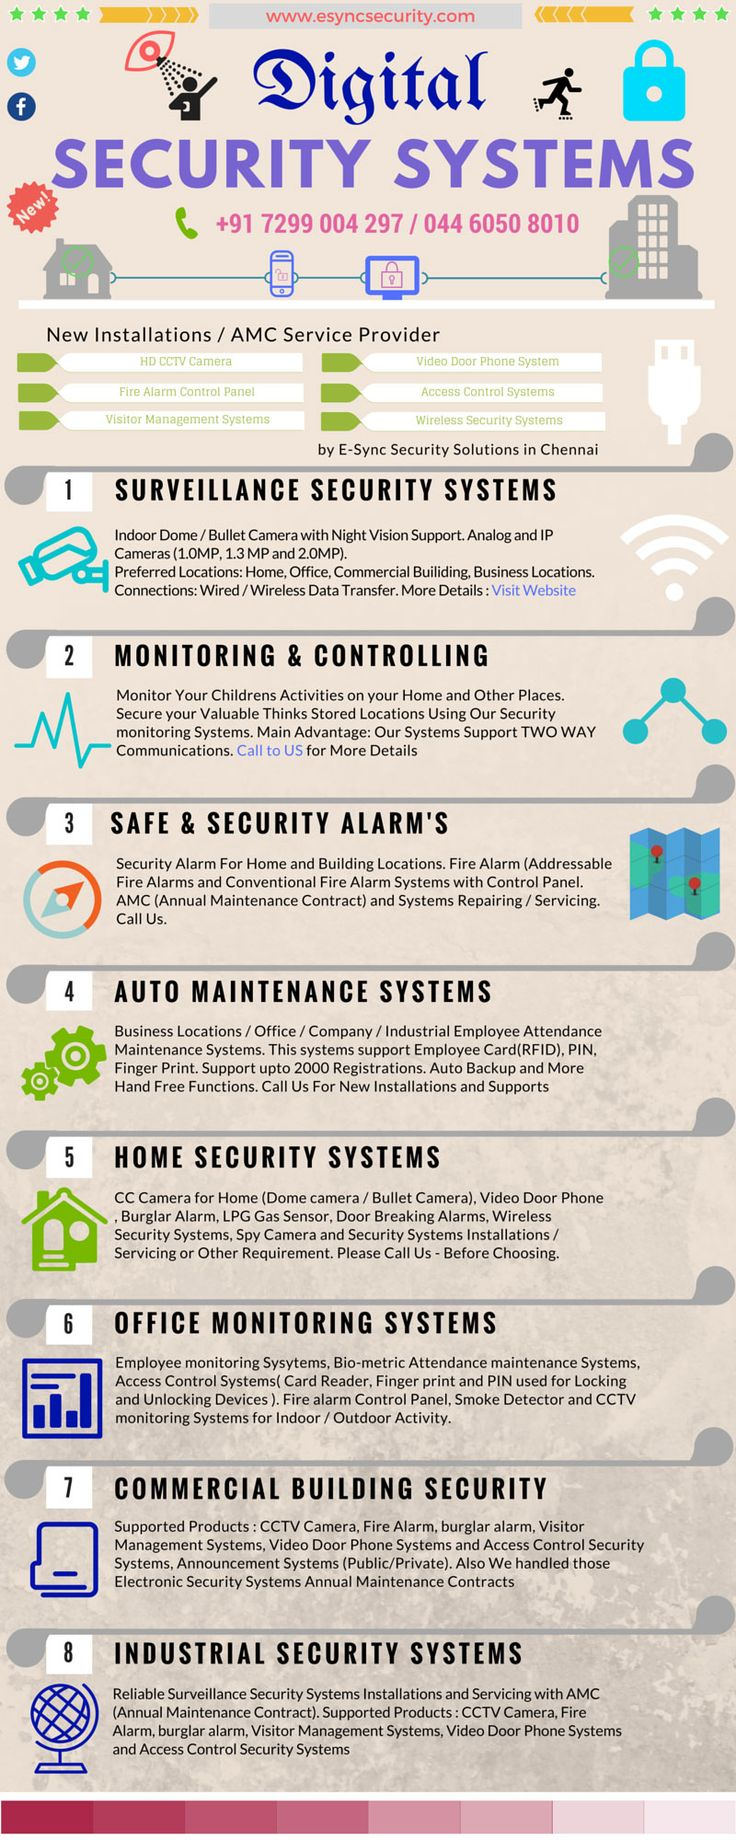 E-Sync Security Solutions #esyncsecurity #infographic